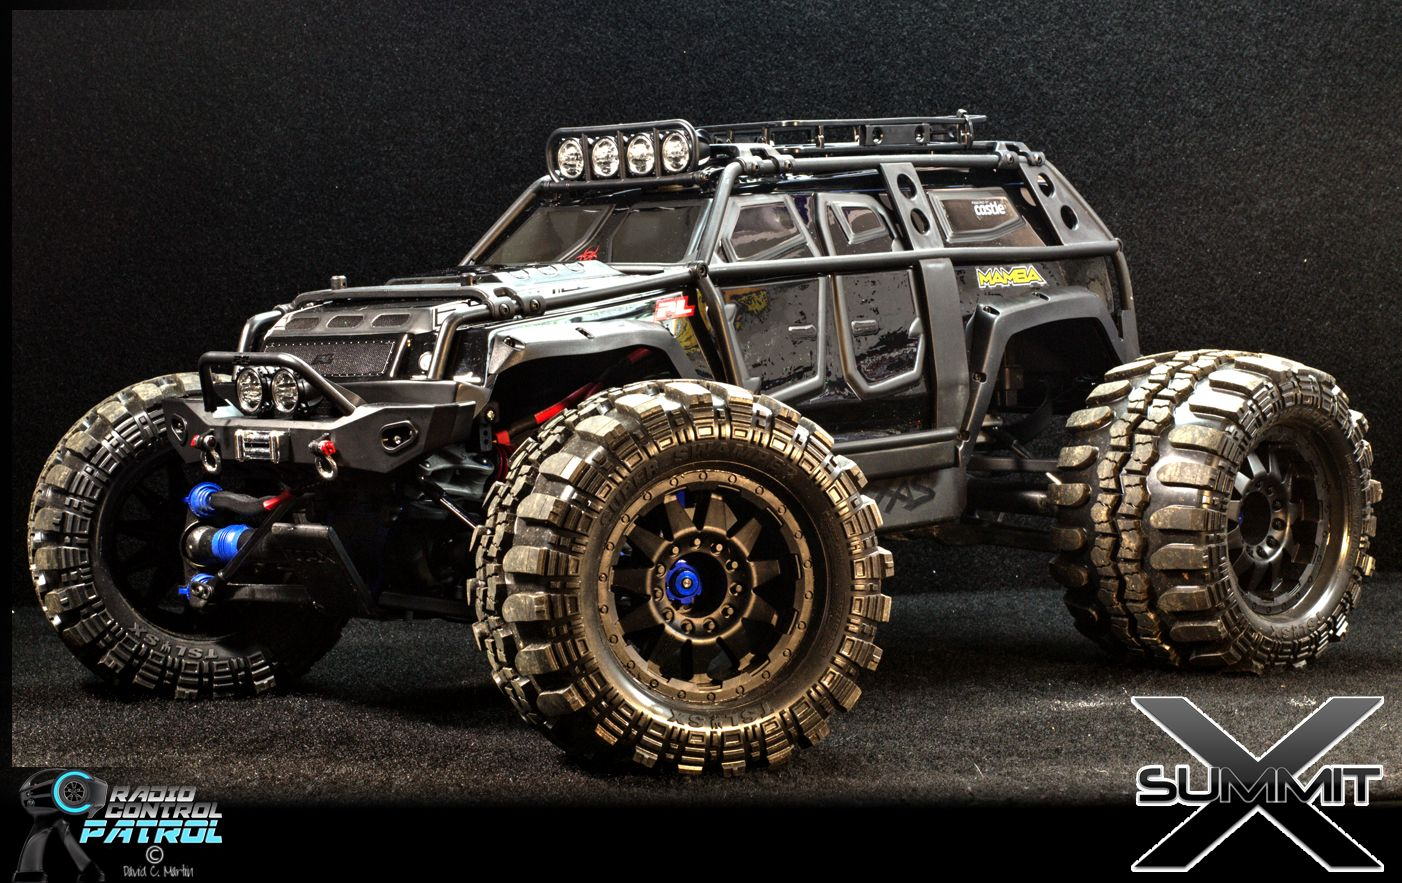 Incroyable Brushless Summit With Rok Lox Tires | Traxxas Summit | Pinterest | Cars